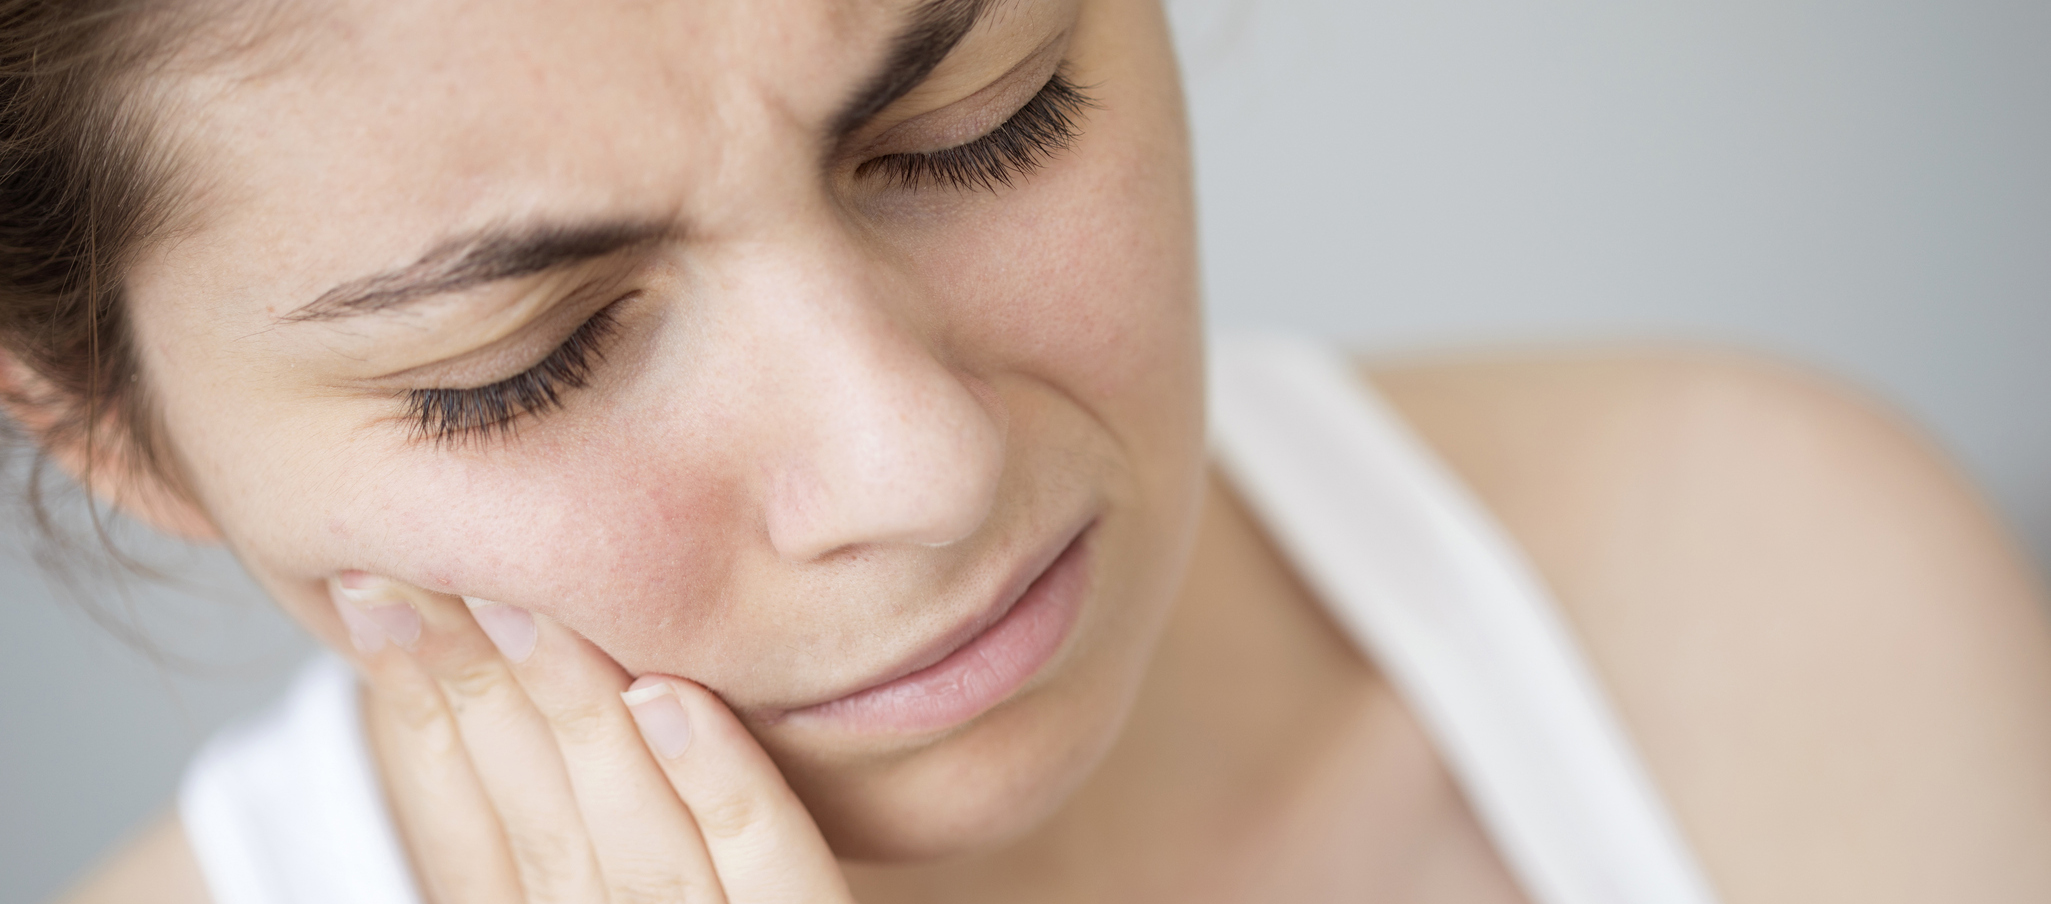 Don't Ignore Pain and Sensitivity in the Mouth—You Could Have a Dental Abscess